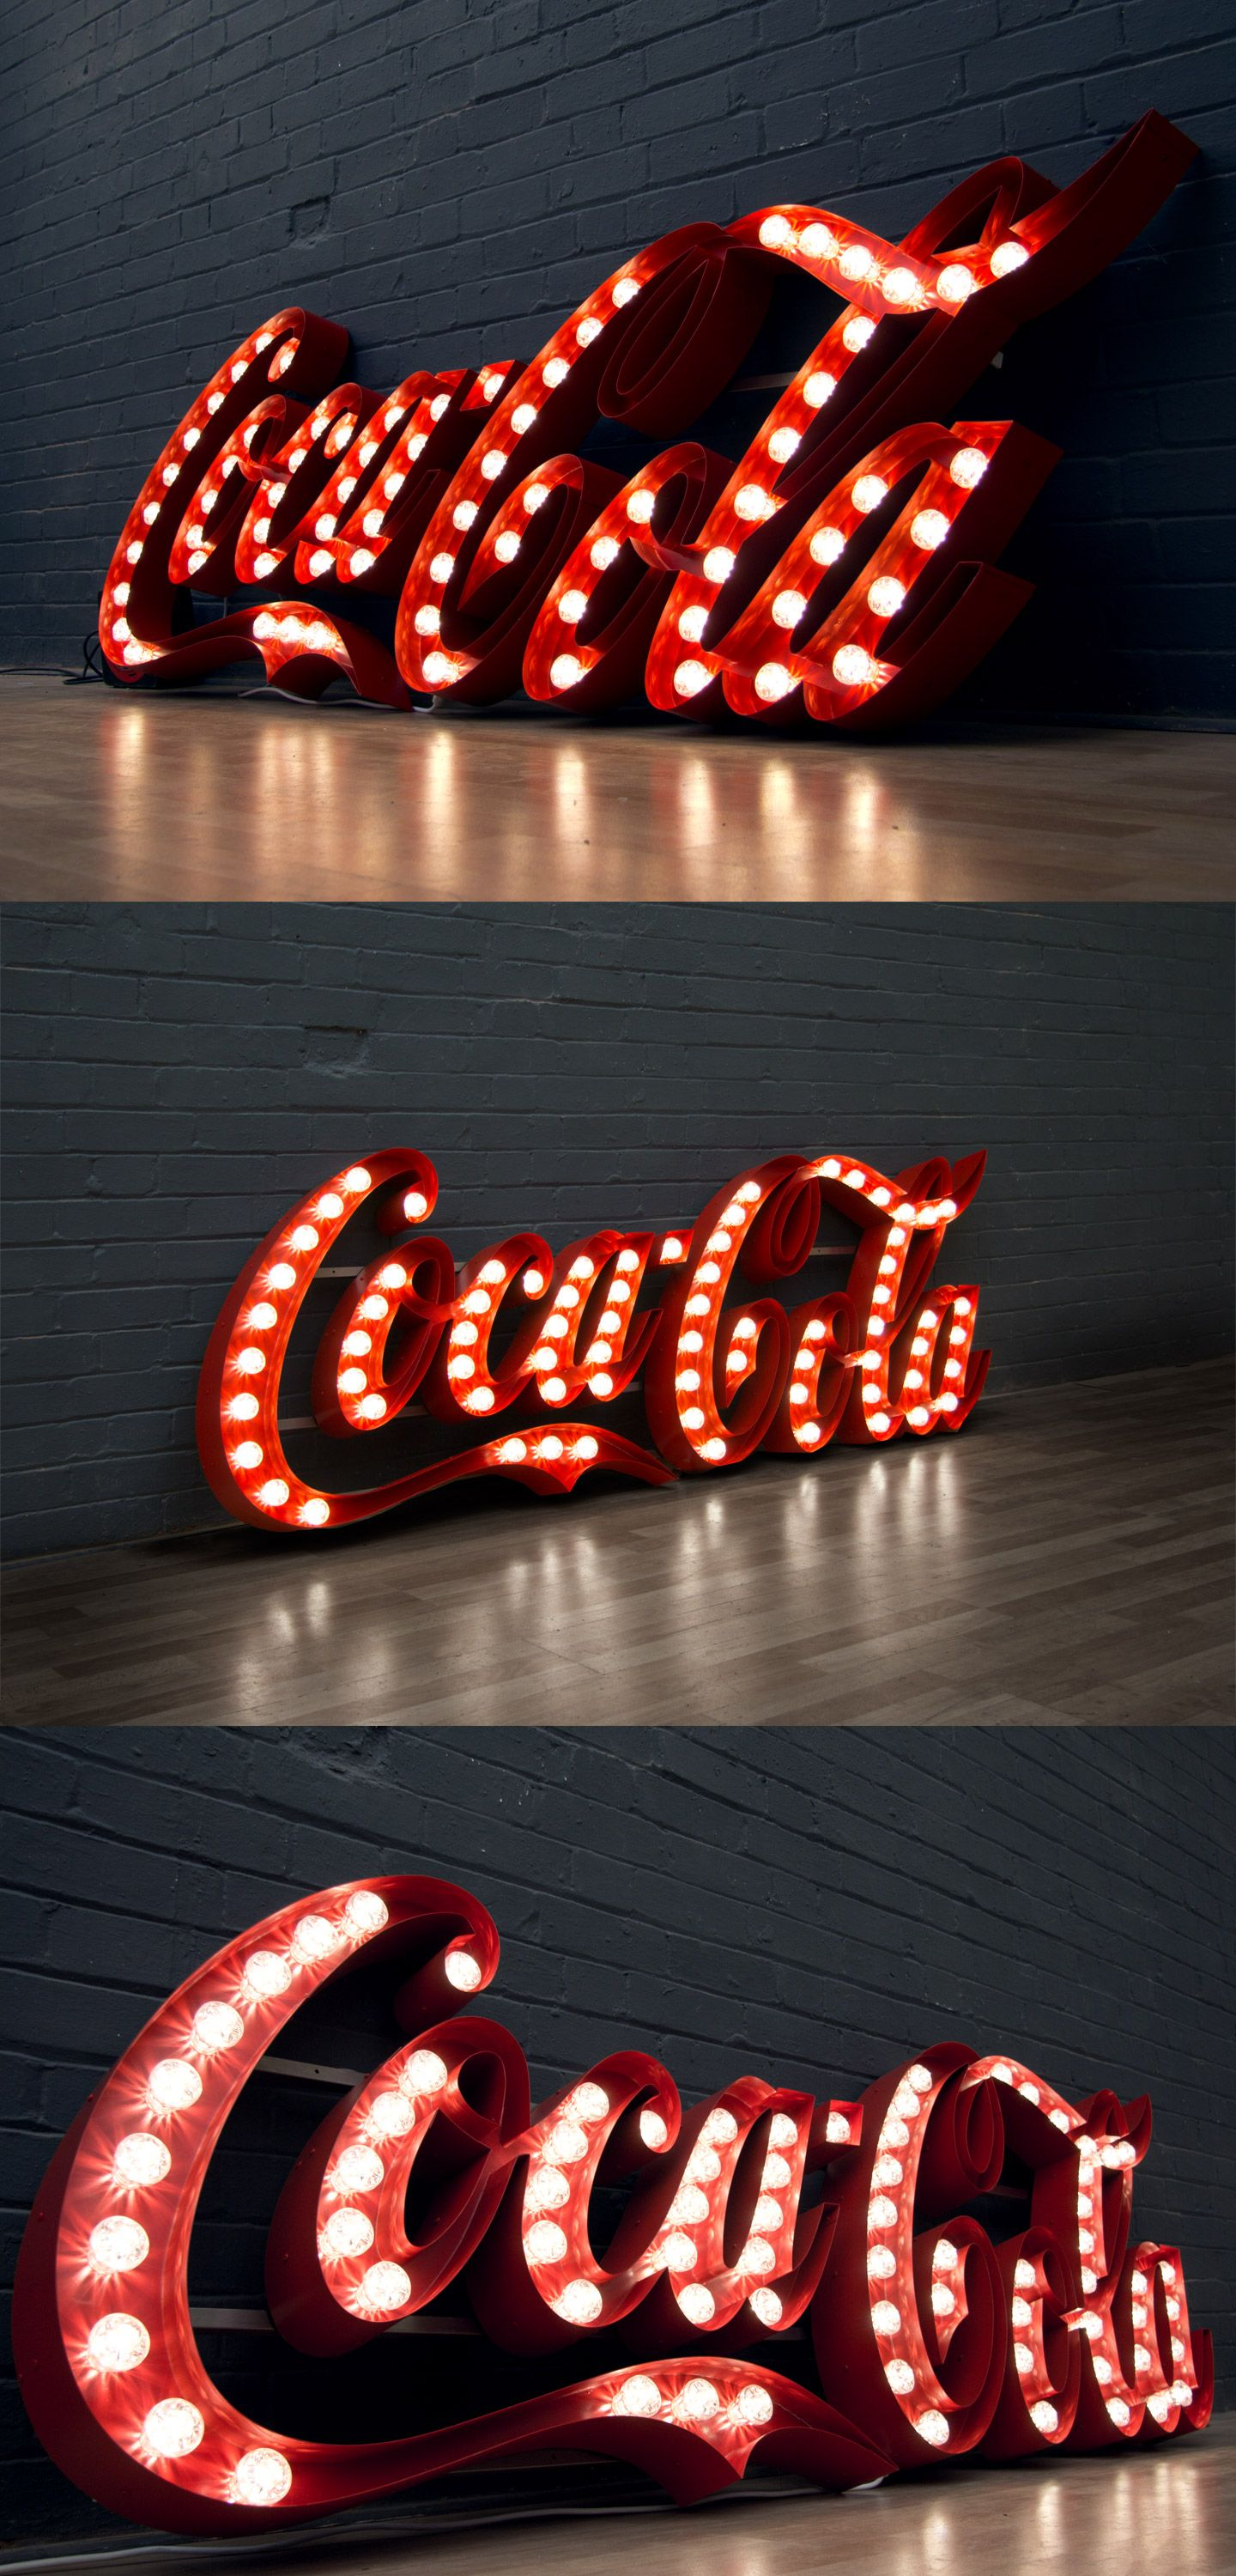 fairground inspired bulb sign for coca cola by goodwin. Black Bedroom Furniture Sets. Home Design Ideas